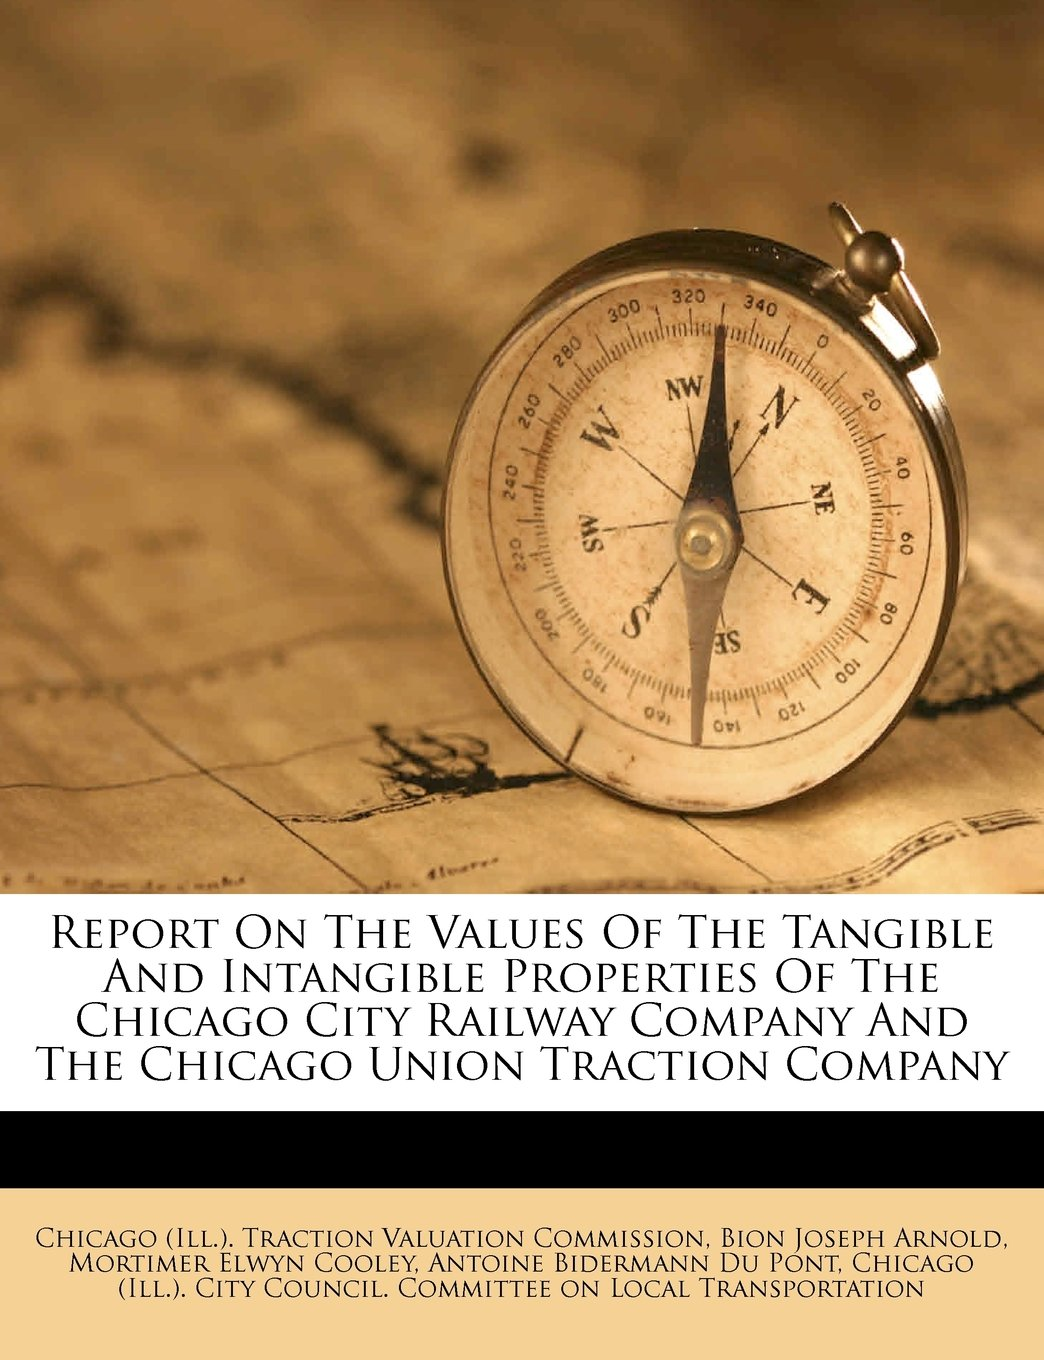 Download Report On The Values Of The Tangible And Intangible Properties Of The Chicago City Railway Company And The Chicago Union Traction Company pdf